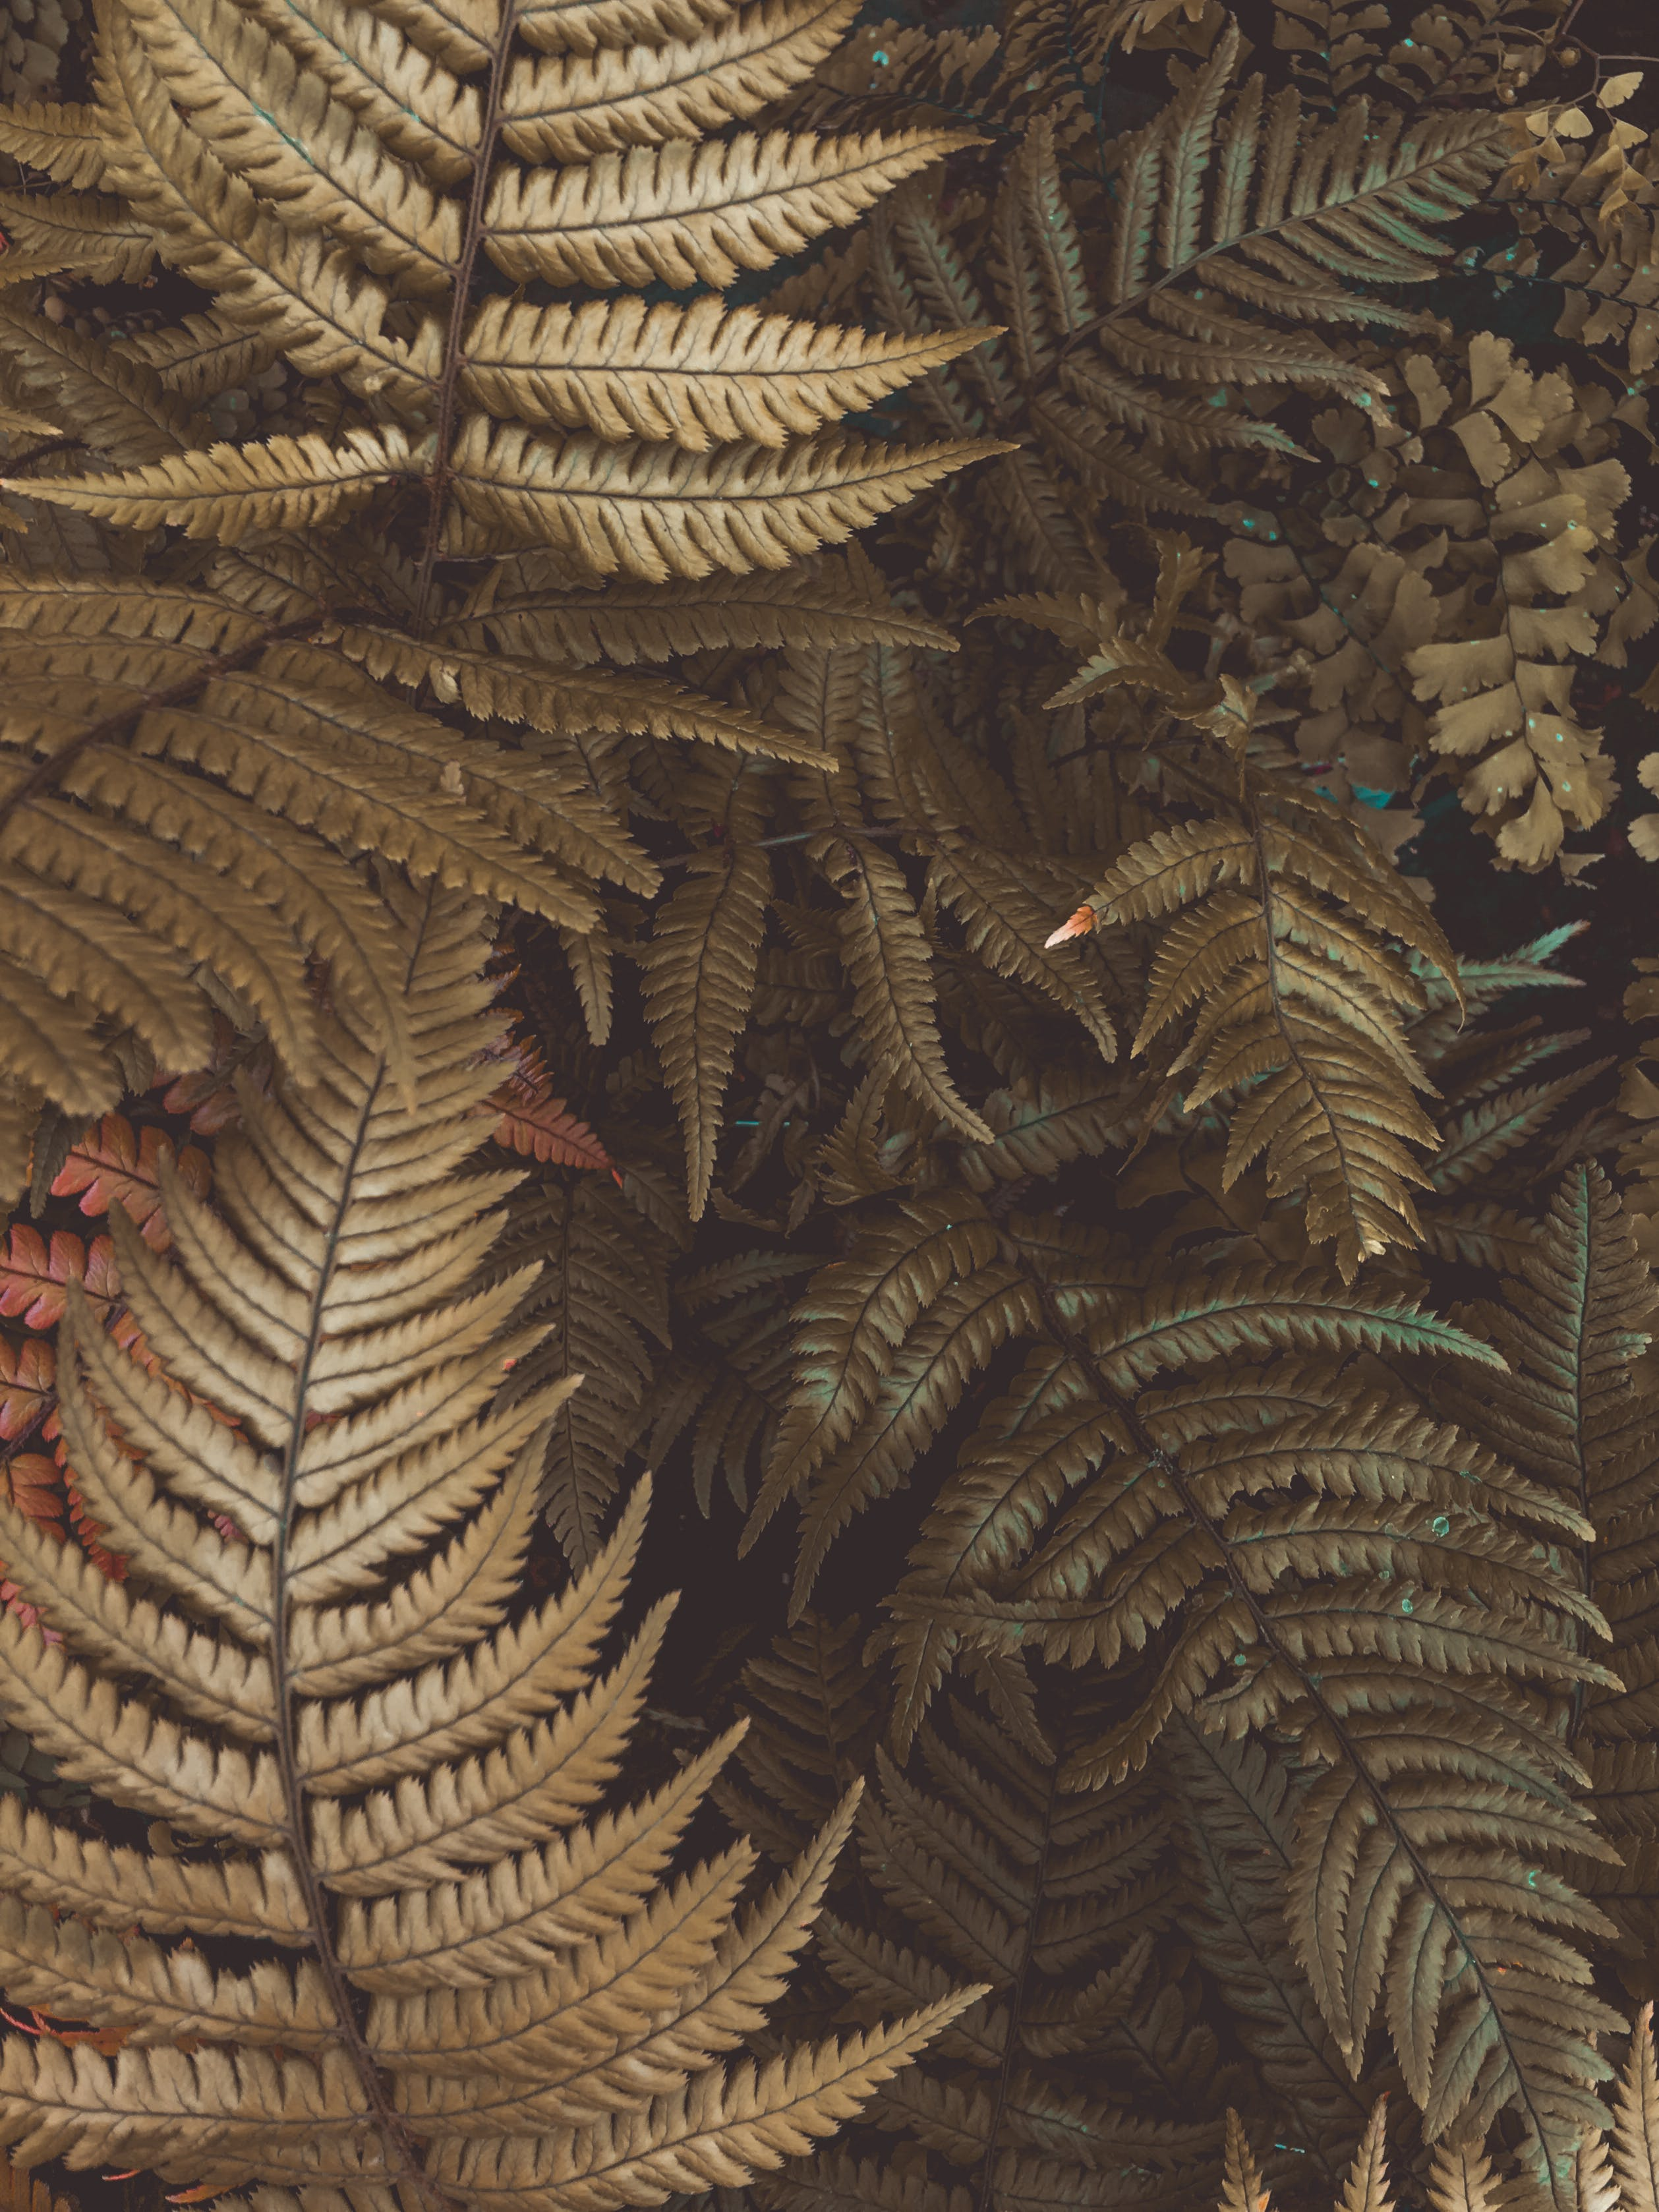 Photo of Fern Plants